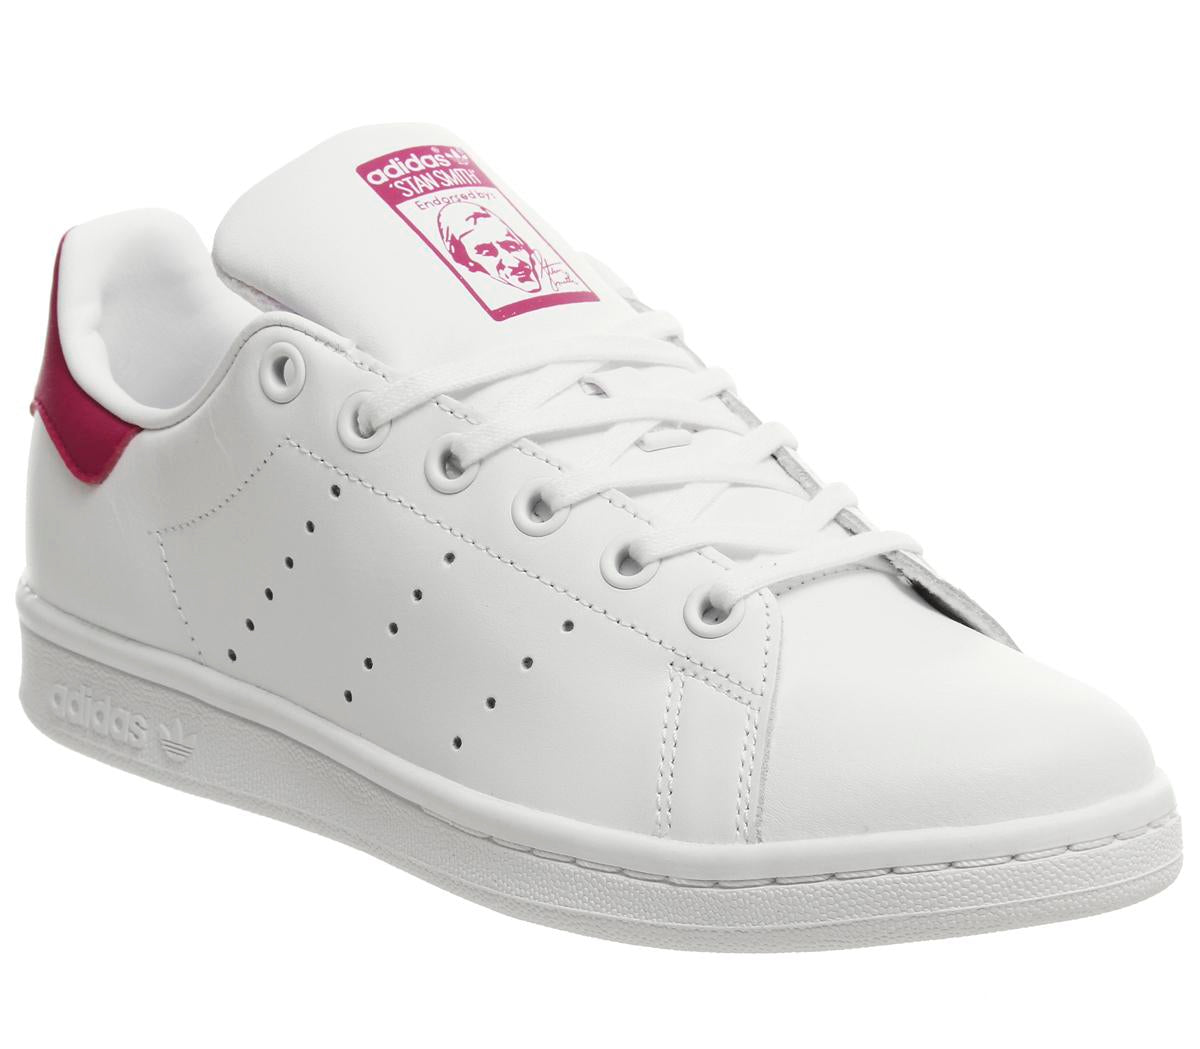 huge selection of 23fdc ed78e Womens Adidas Stan Smith Gs White White Bold Pink Uk Size 4.5